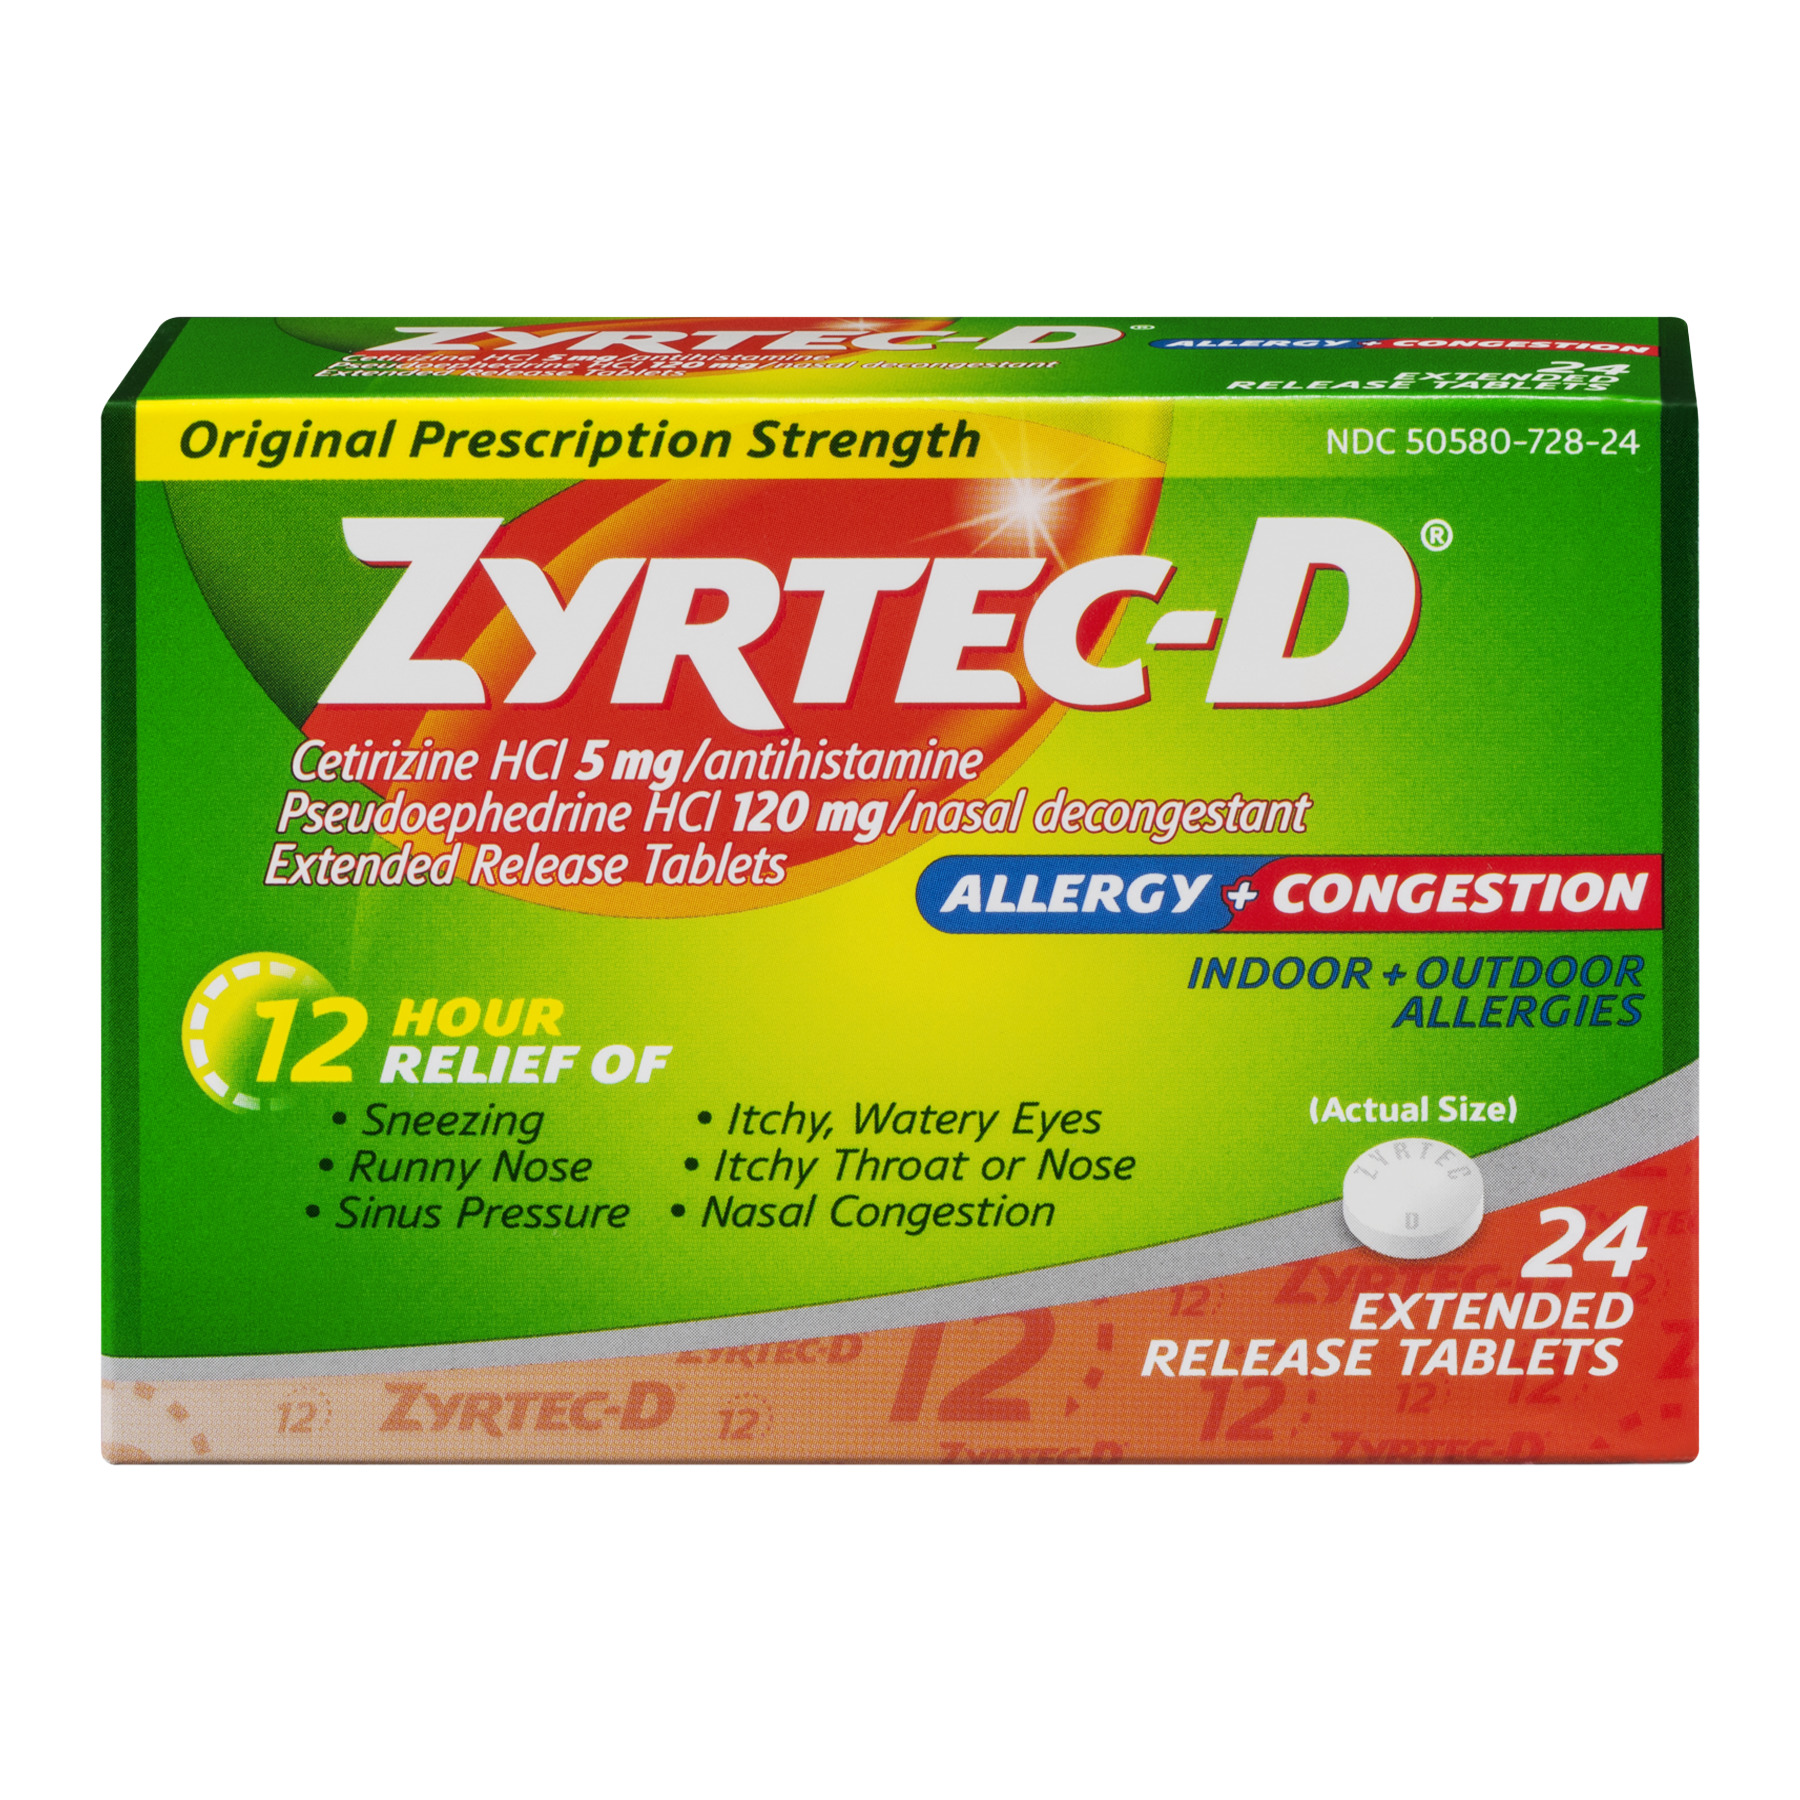 Zyrtec-D Allergy & Congestion 12 Hour Extended Release Tablets, 24ct